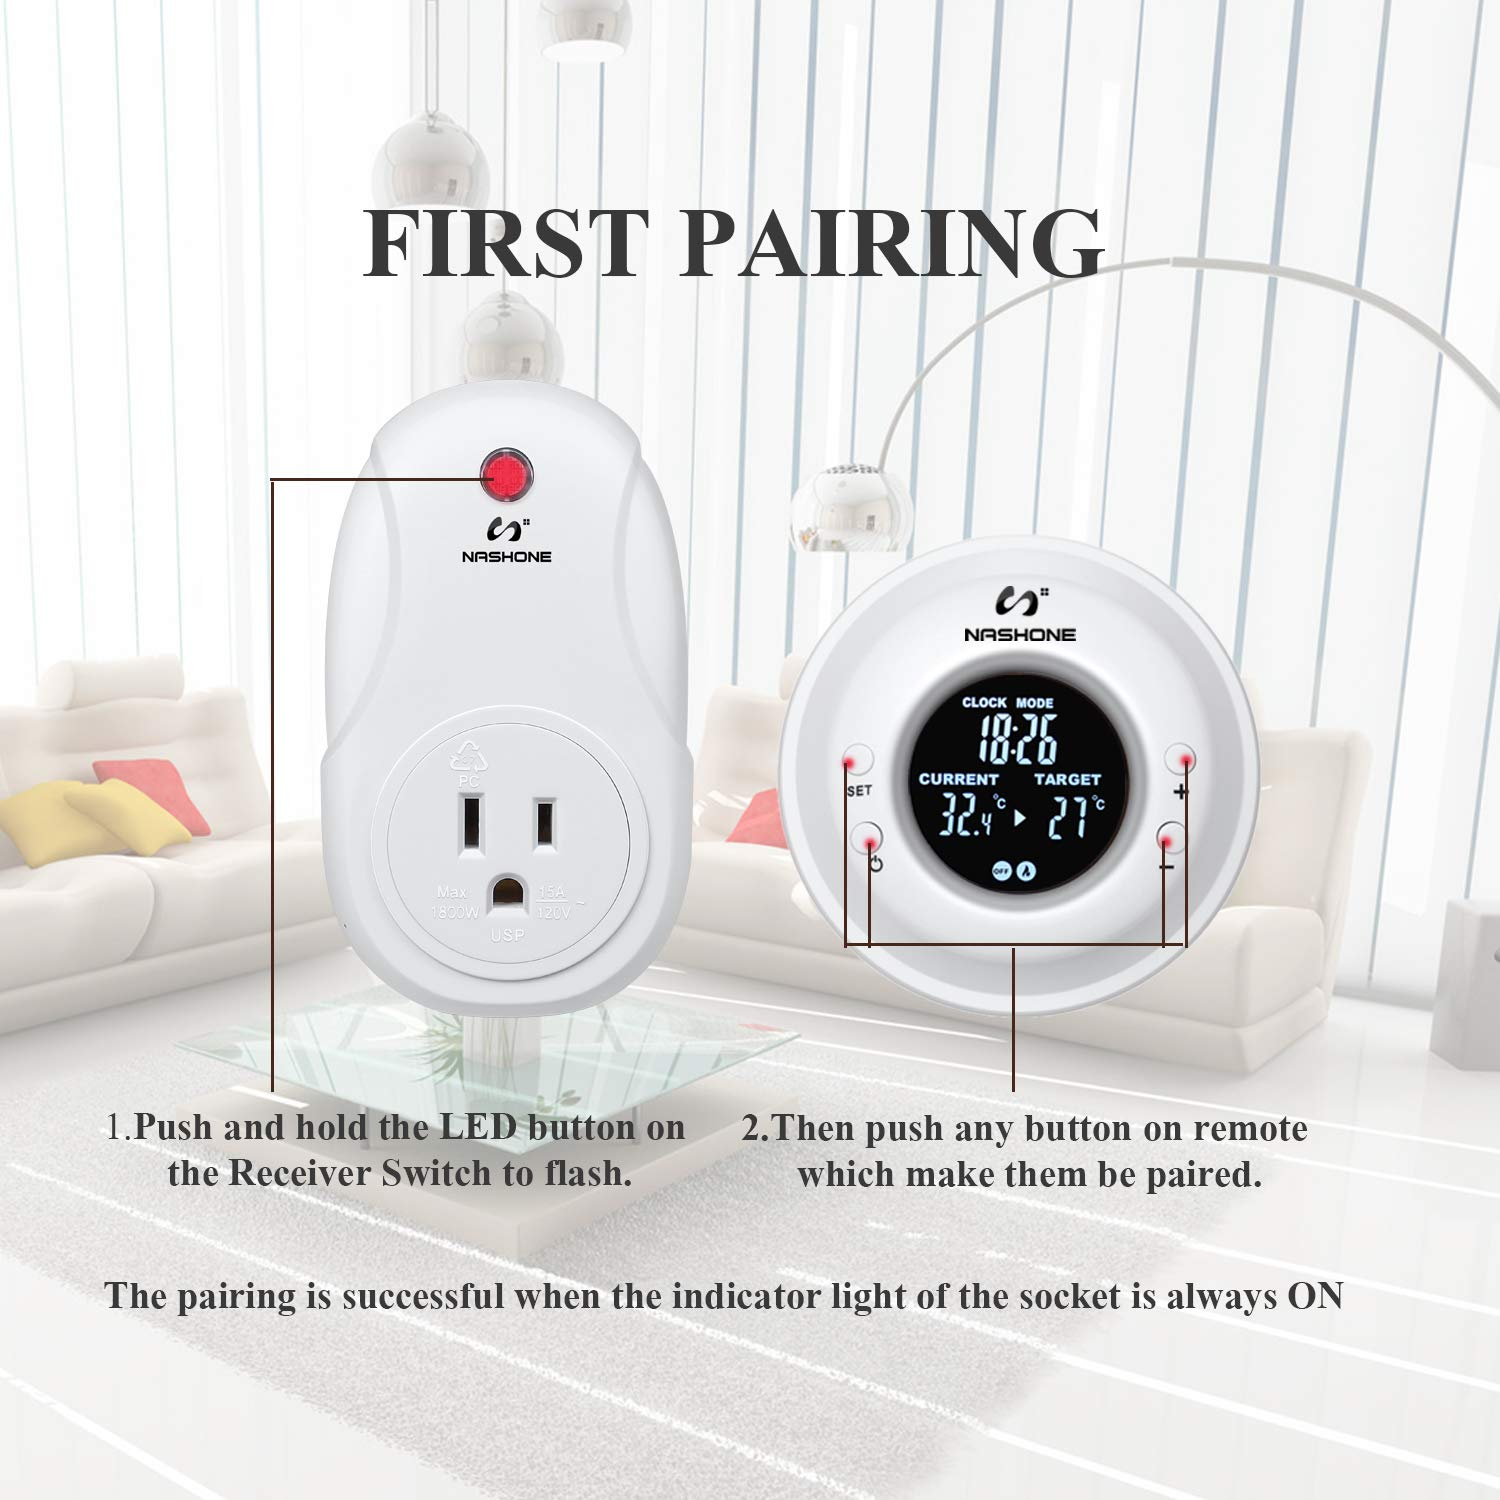 Nashone Digital Wireless Temperature Controller Built in Temp Sensor Electric Thermostat Socket 3 Prong Plug LCD Display Heating Cooling Mode